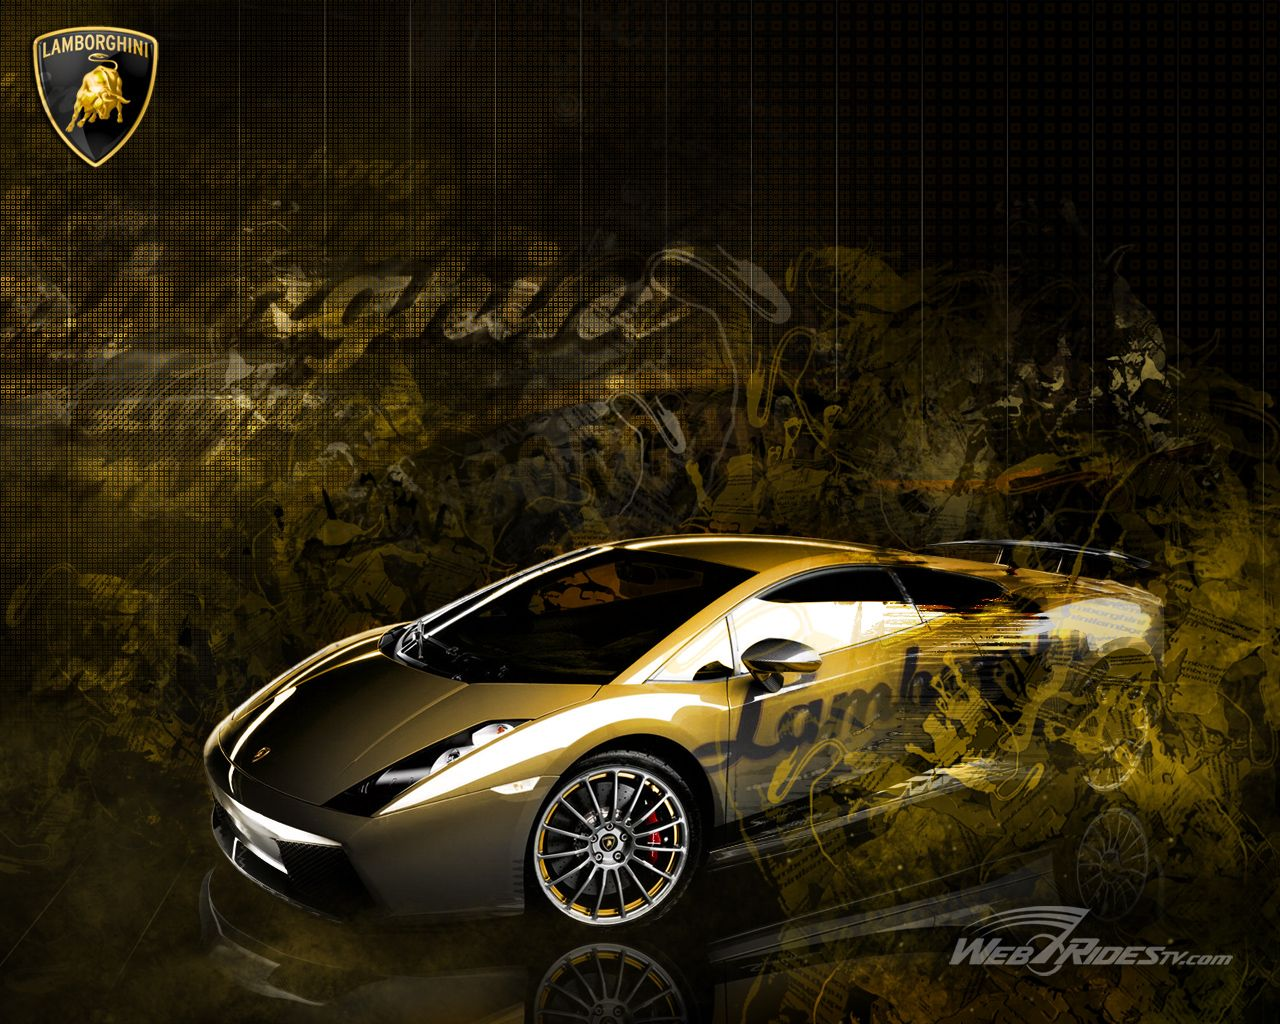 Wallpapers For Cool Lamborghini Wallpapers 1280x1024